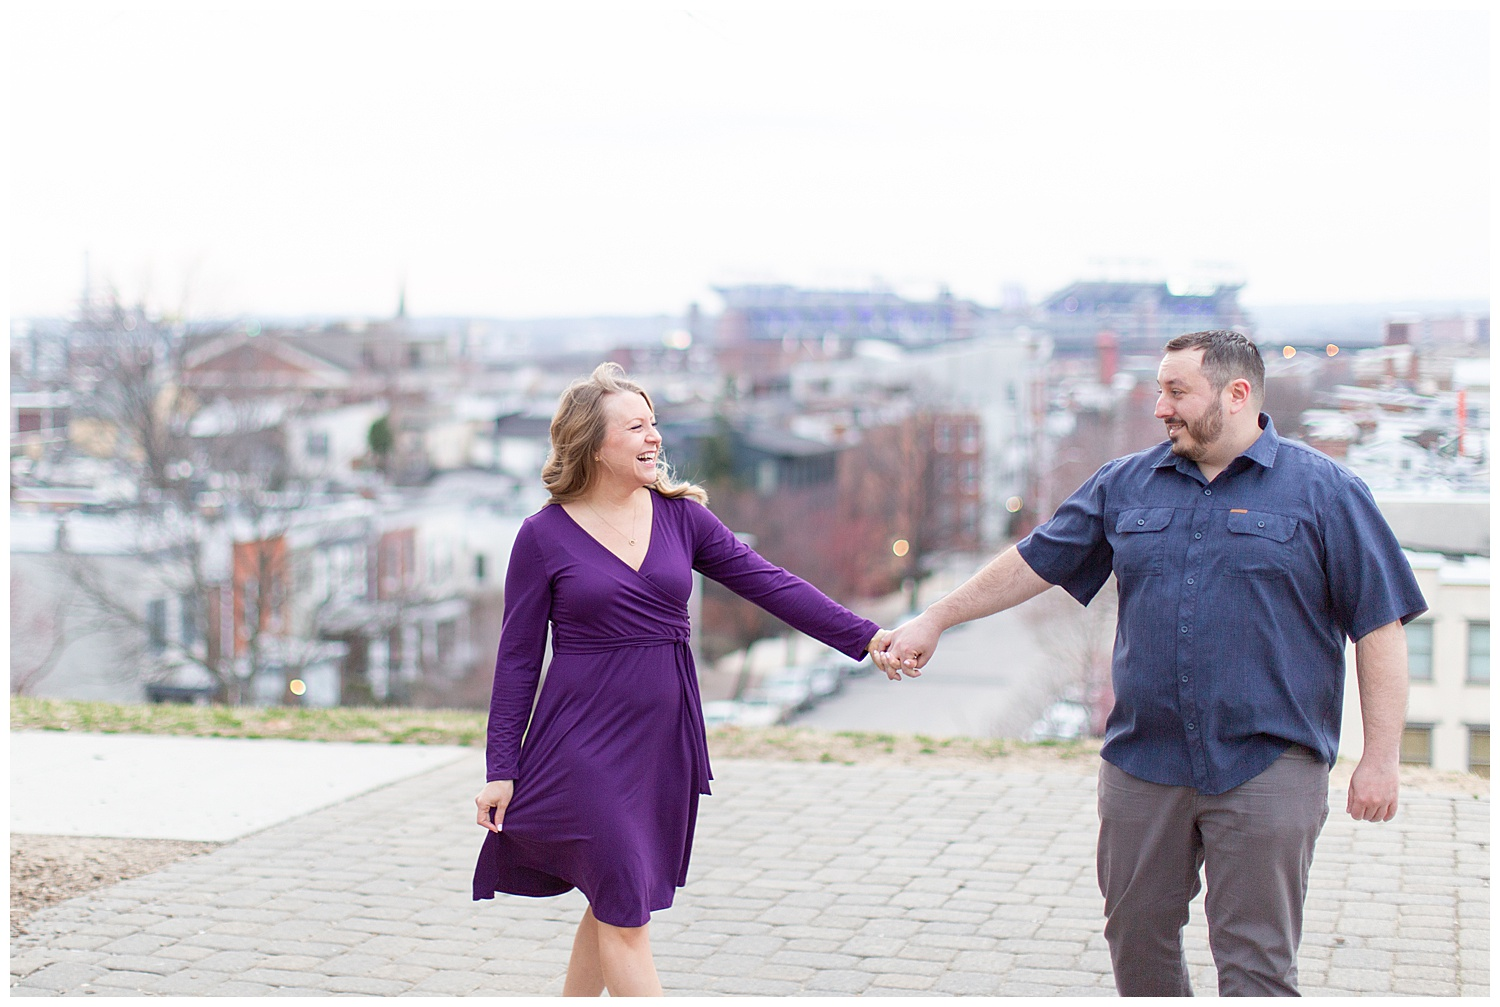 emily-belson-photography-baltimore-engagement-17.jpg